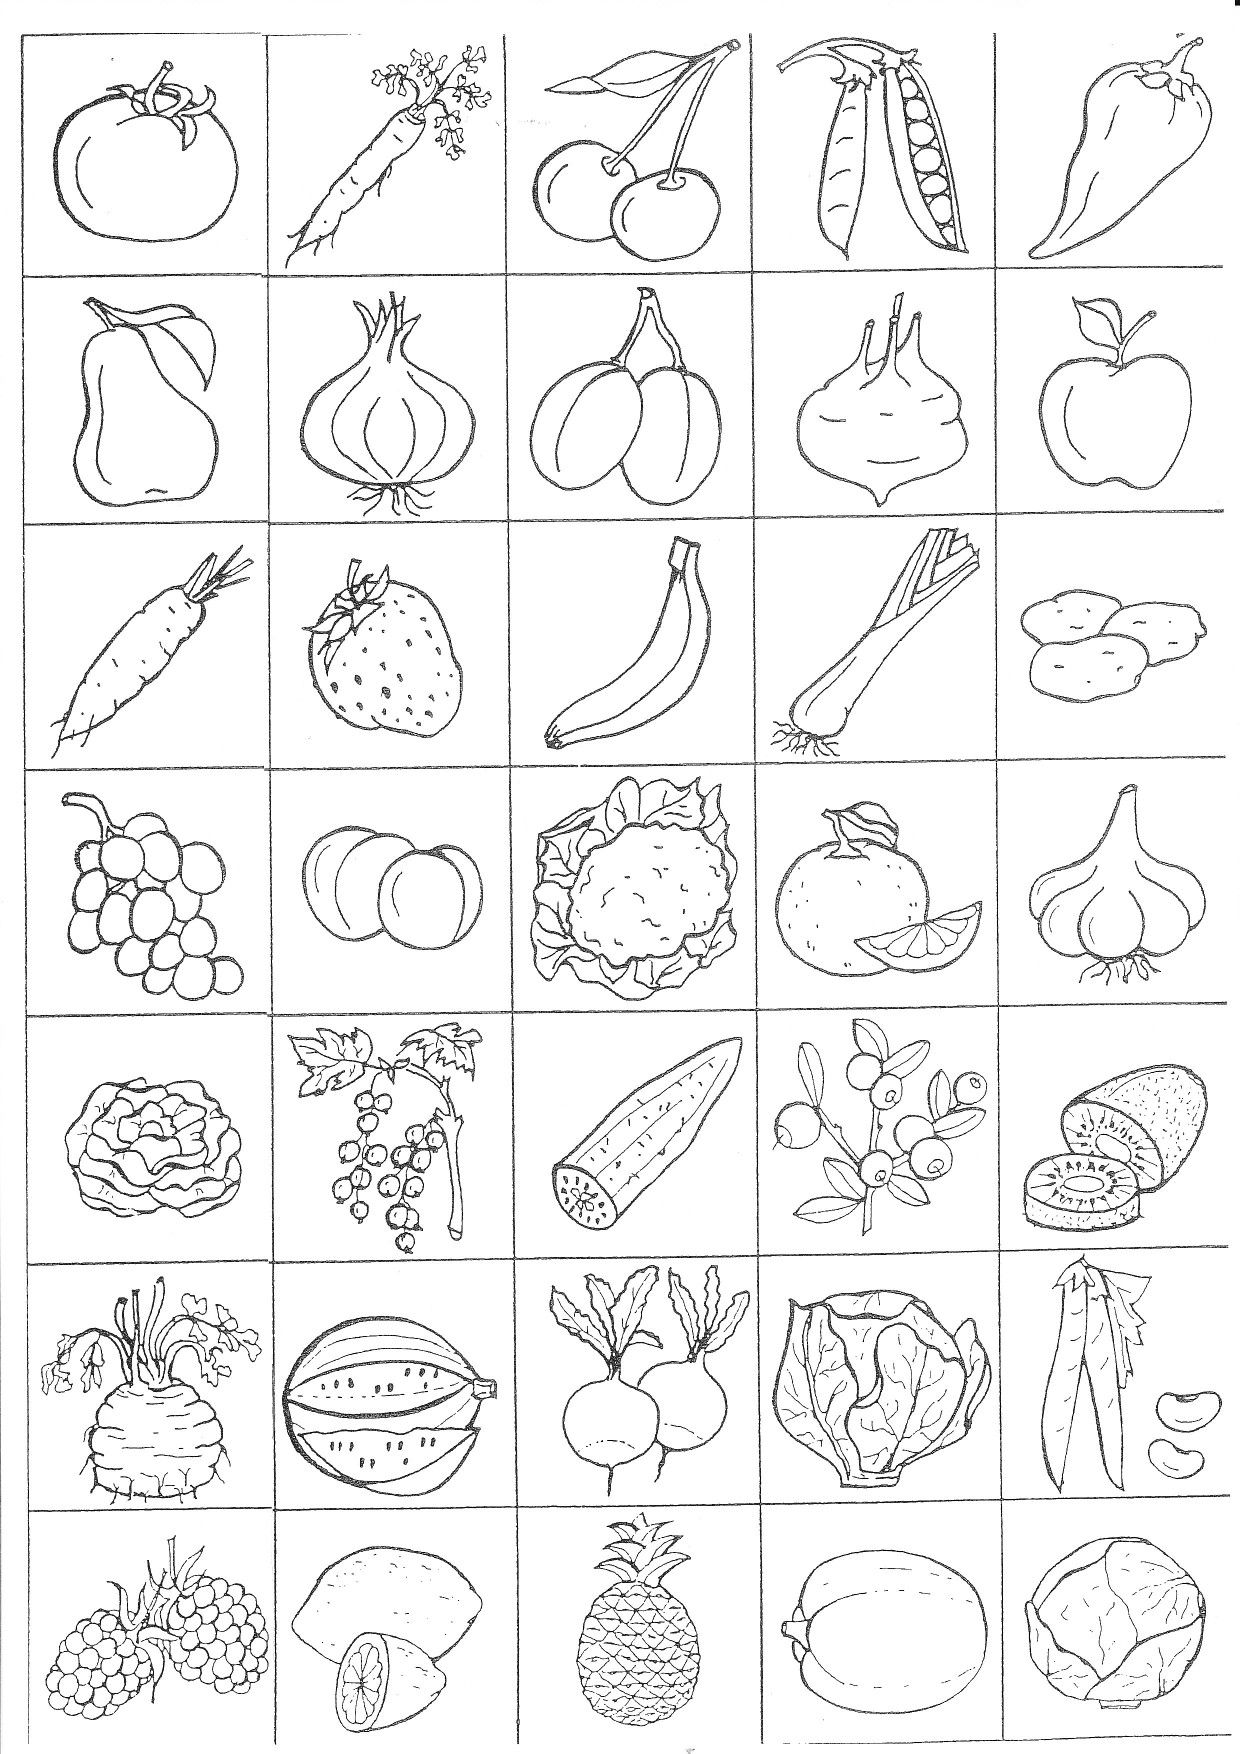 Pin By Darlington Madududu On Coloring Pages